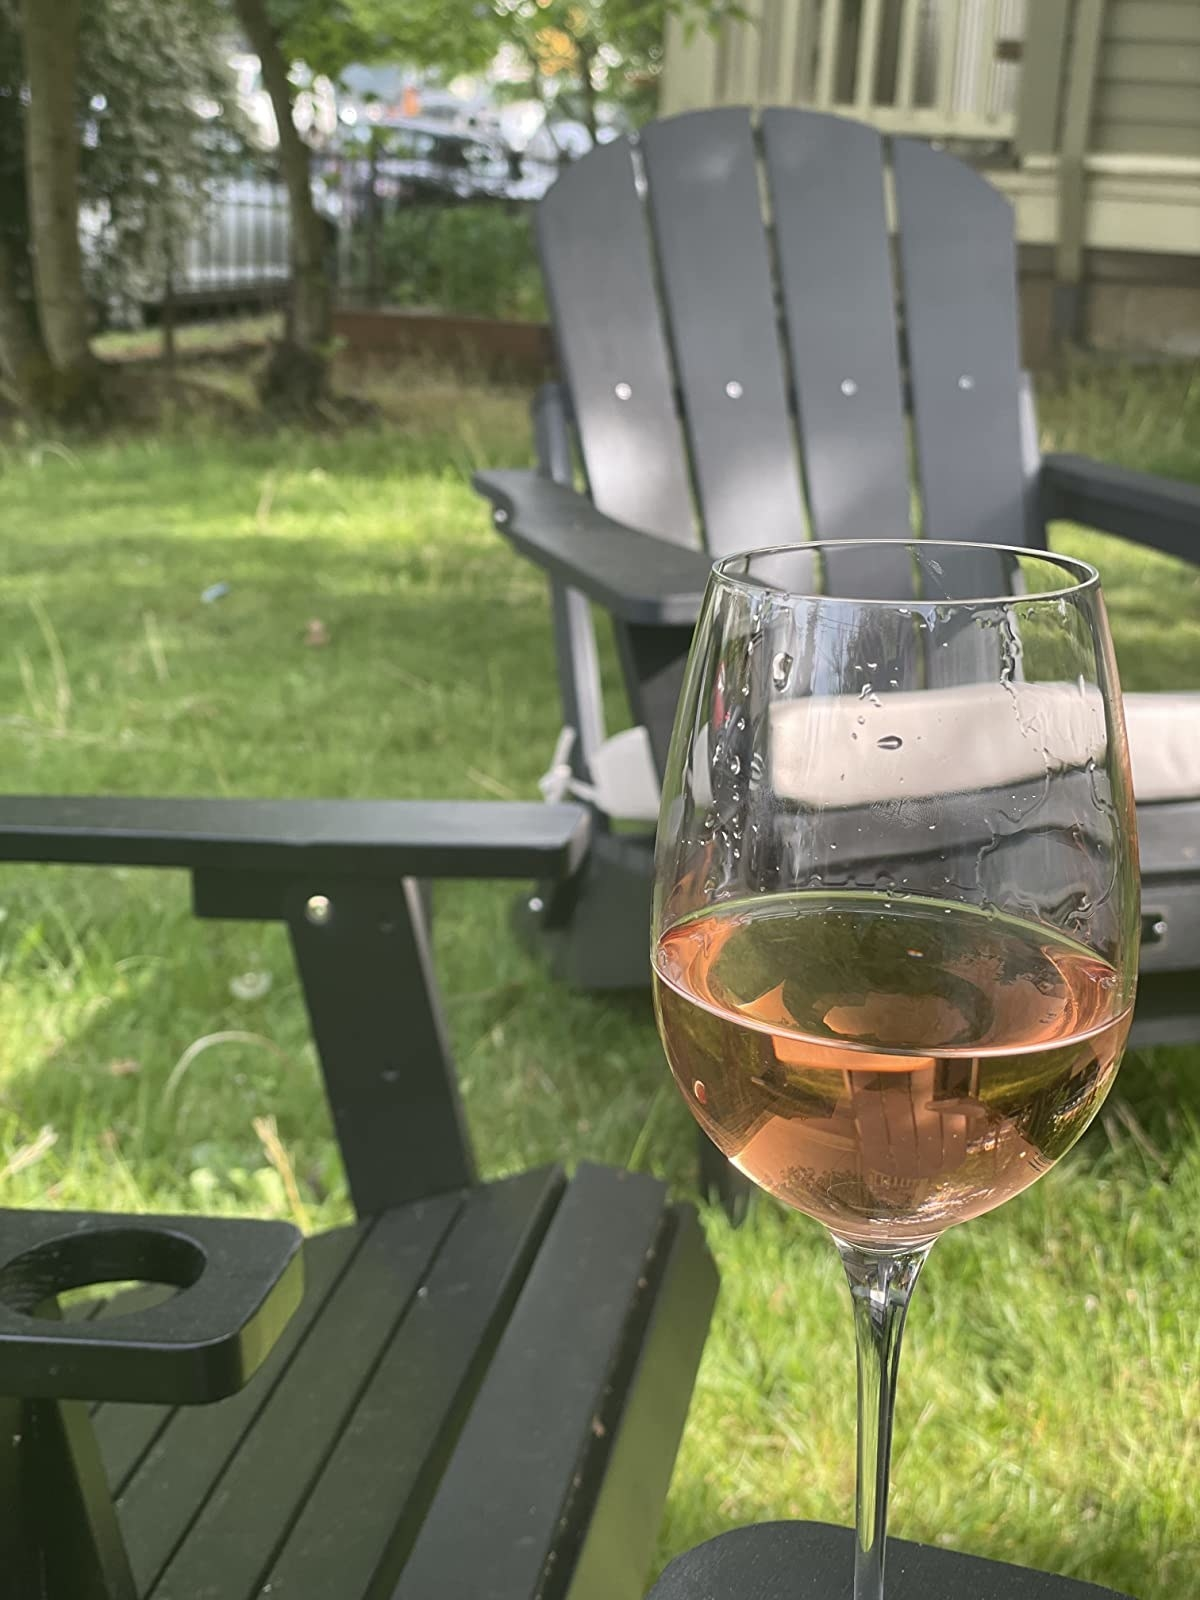 A wine glass with two Adirondack chairs in the background